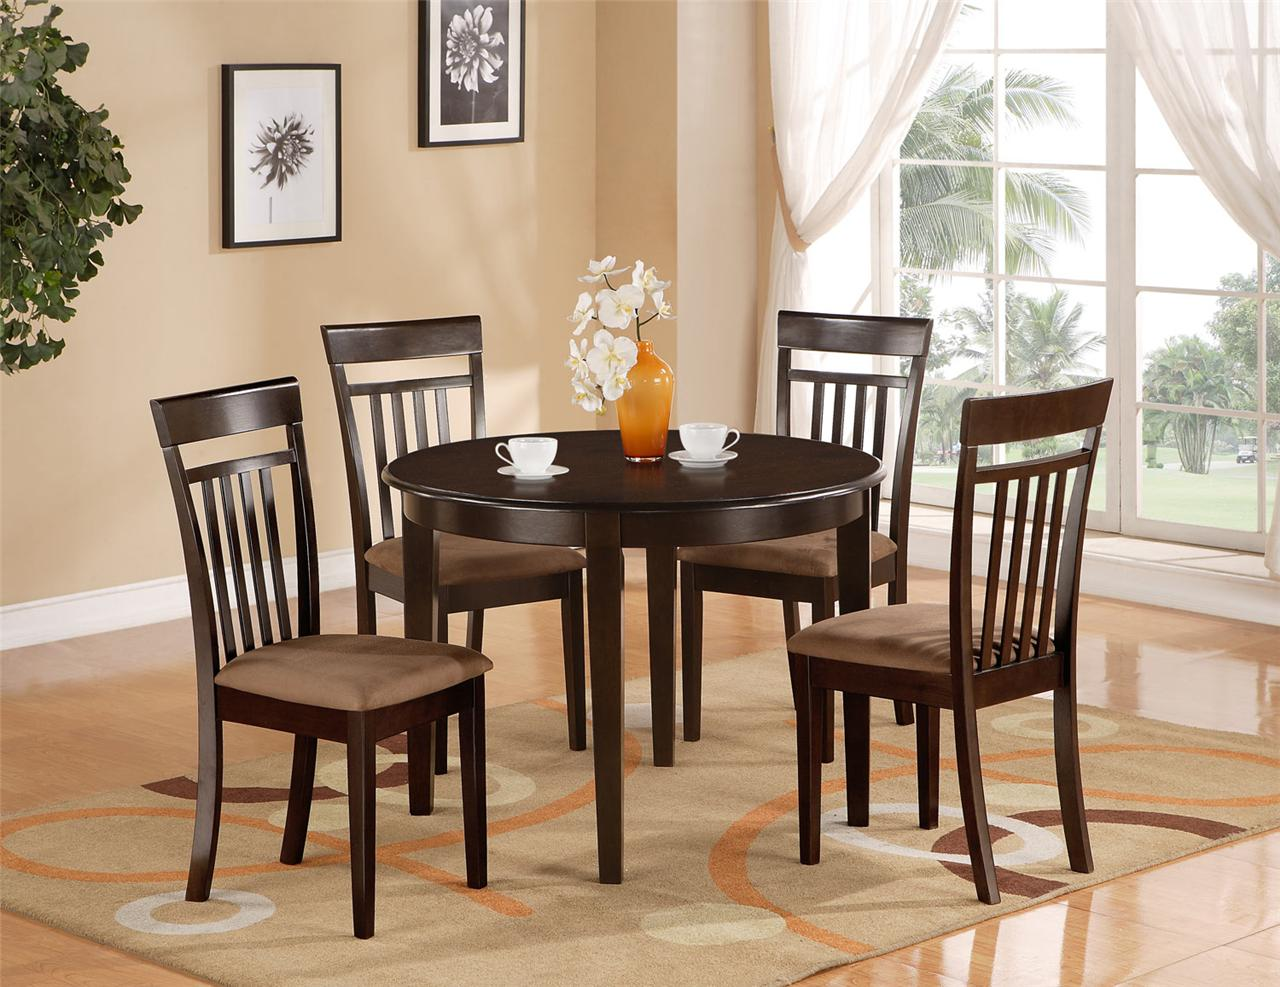 5 PC ROUND KITCHEN DINETTE TABLE & 4 CHAIRS CAPPUCCINO